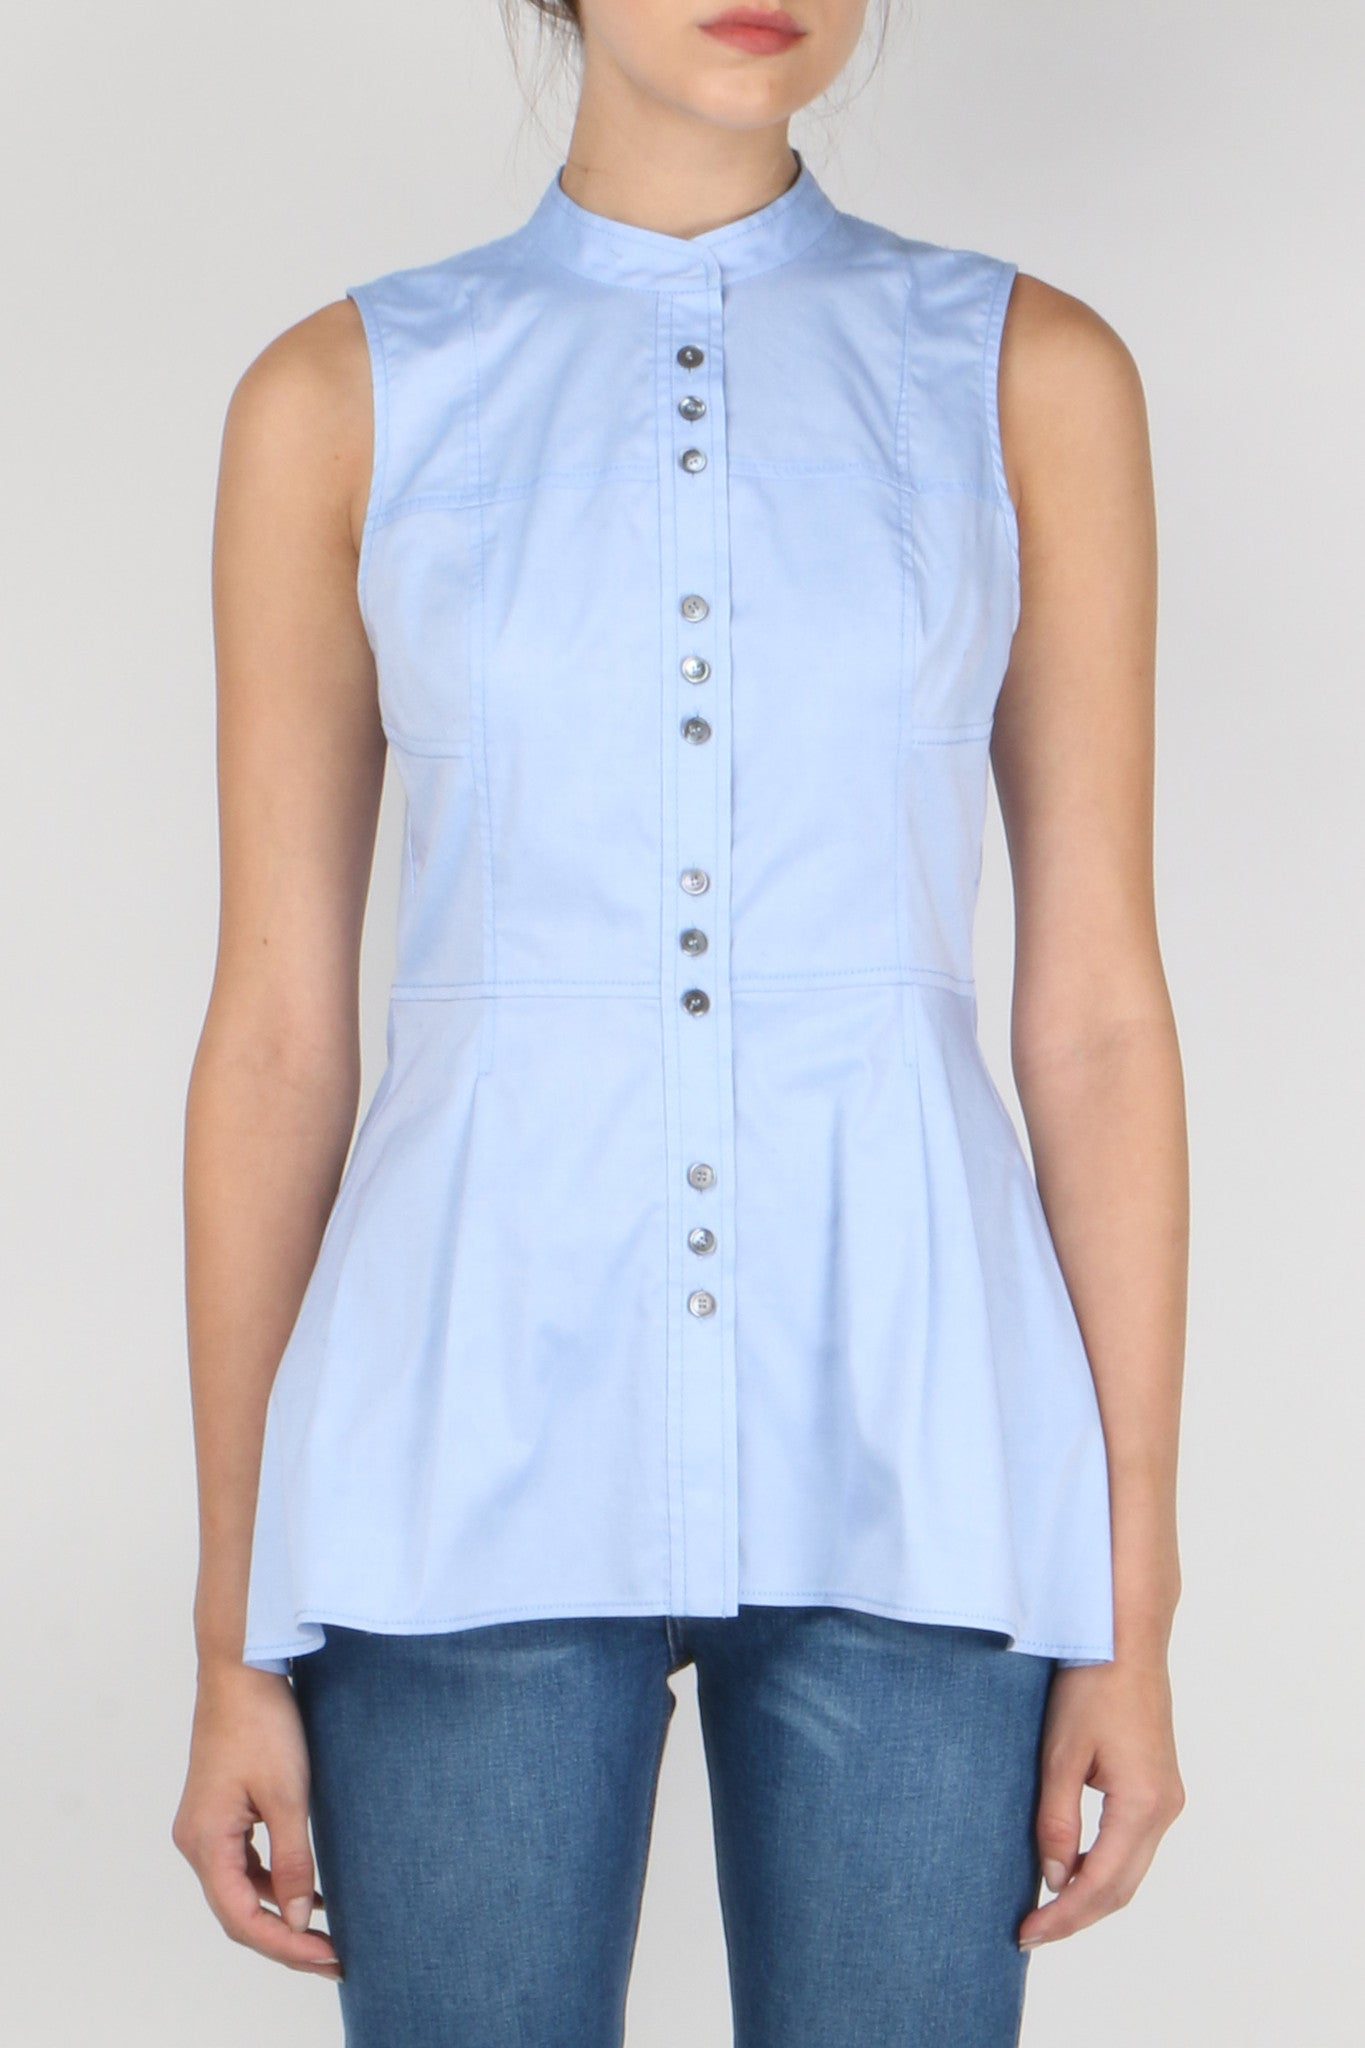 S/L 3-Button Shirt W/ Peplum